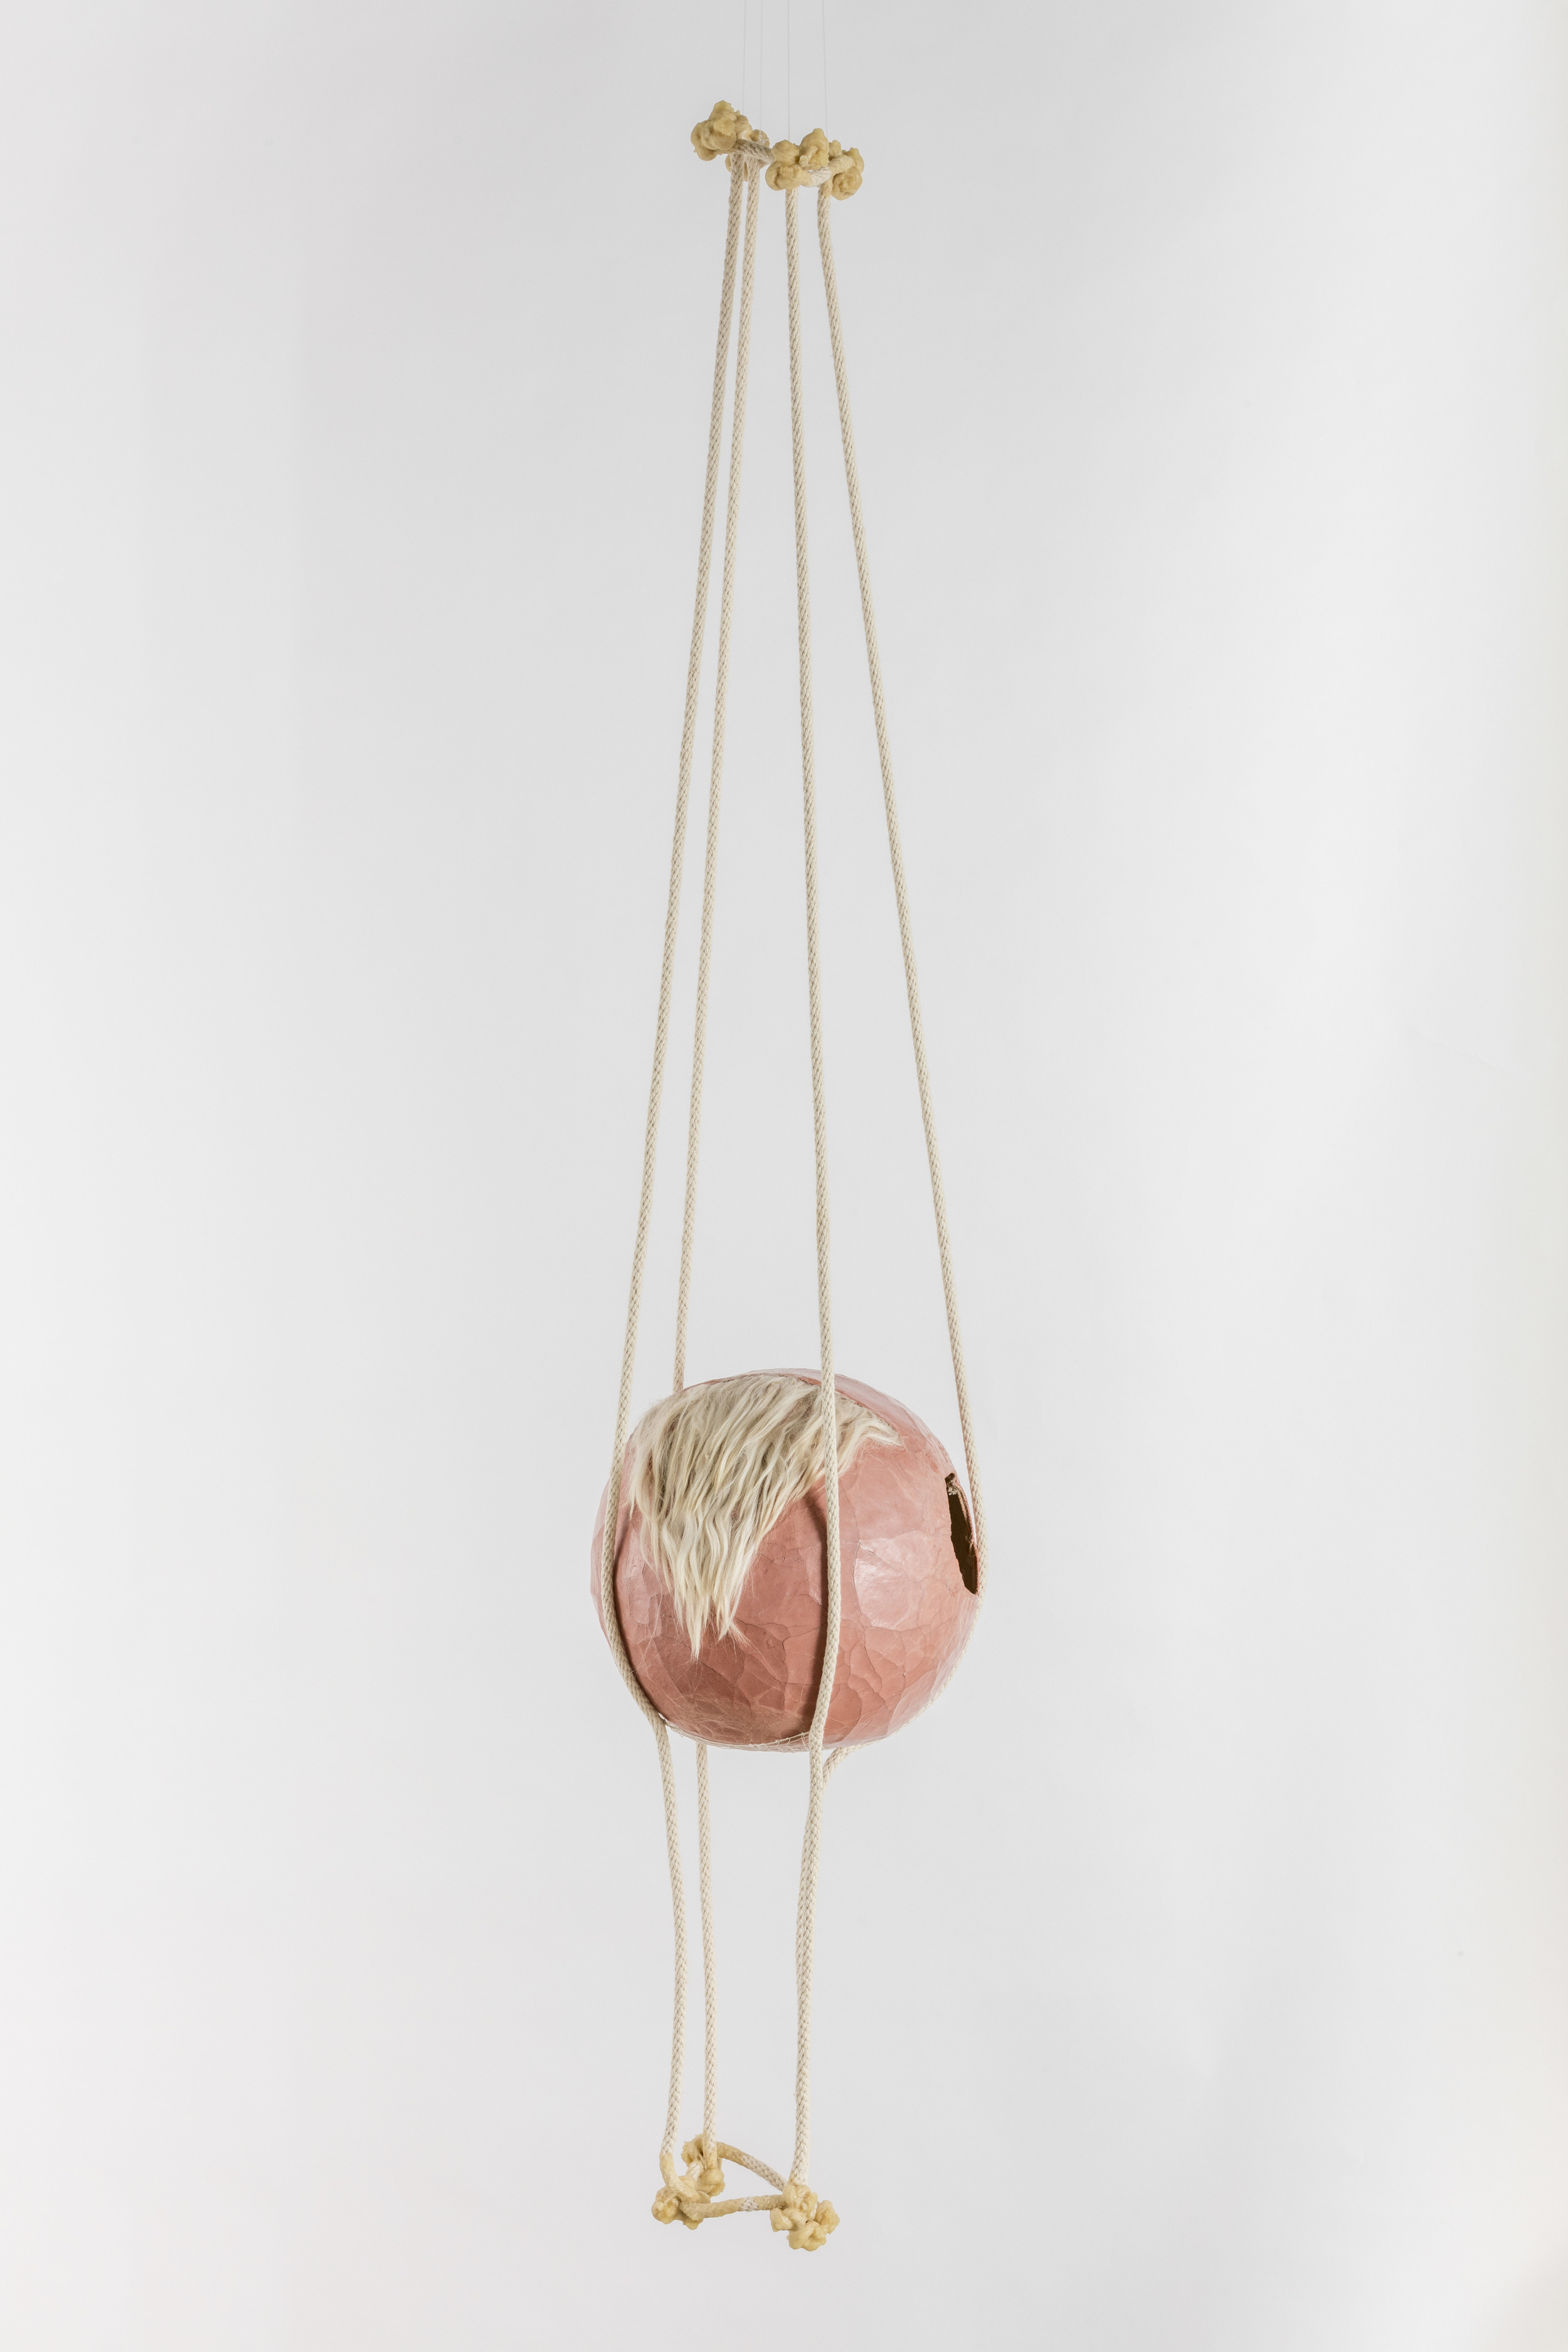 Tanya Aguiniga   Gynic Dispossession 3 , 2016  Cotton rope, cotton thread, canvas, self-drying clay,alpaca and beeswax  56 x 12 x 12 inches